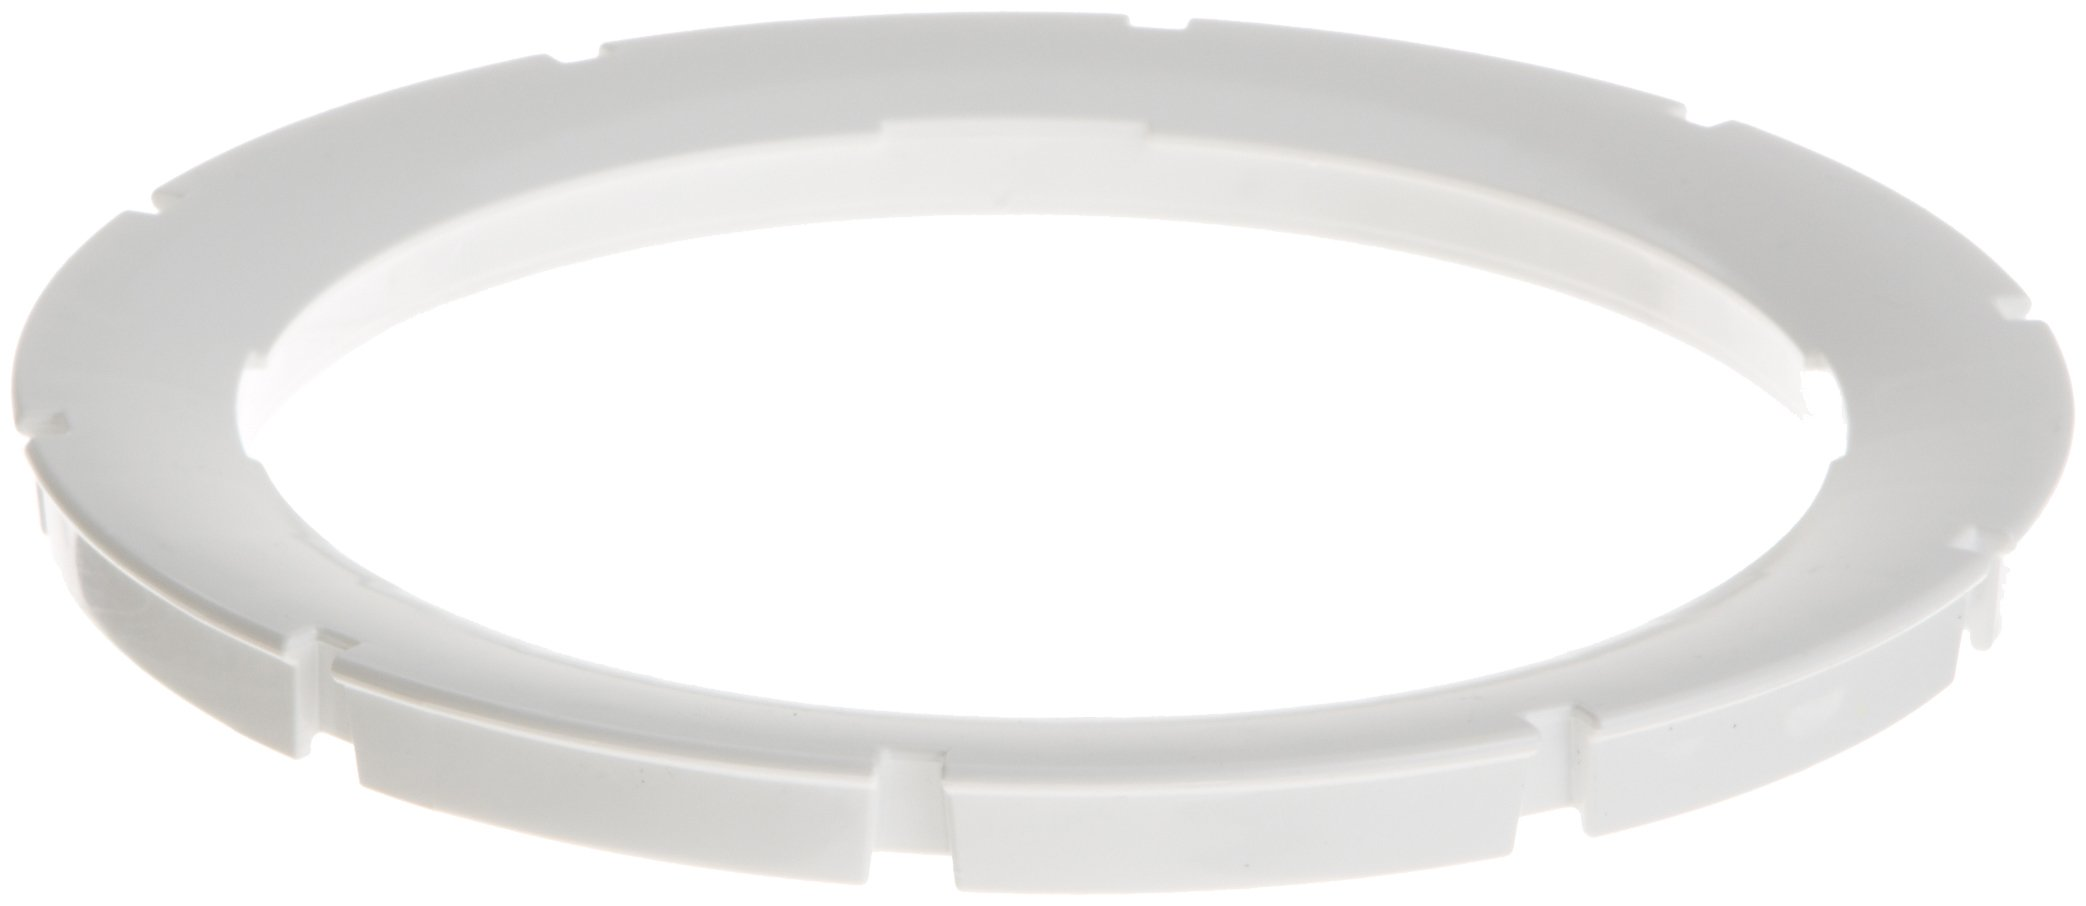 Pentair 619601 White Face Ring Assembly Replacement AquaLumin III Pool and Spa Light